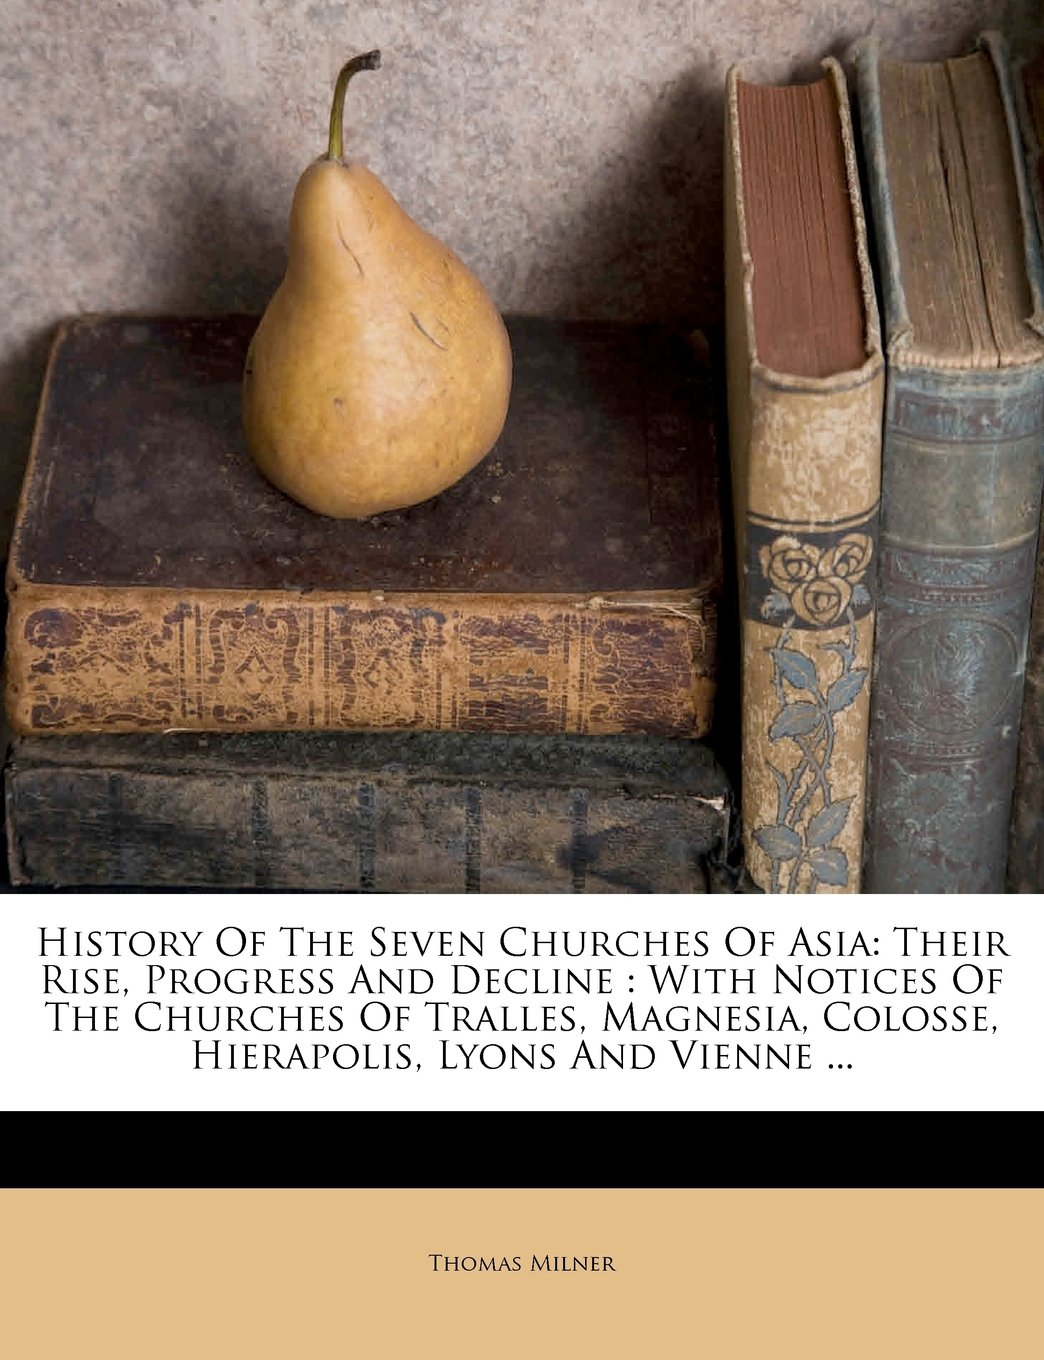 History Of The Seven Churches Of Asia: Their Rise, Progress And Decline : With Notices Of The Churches Of Tralles, Magnesia, Colosse, Hierapolis, Lyons And Vienne ... pdf